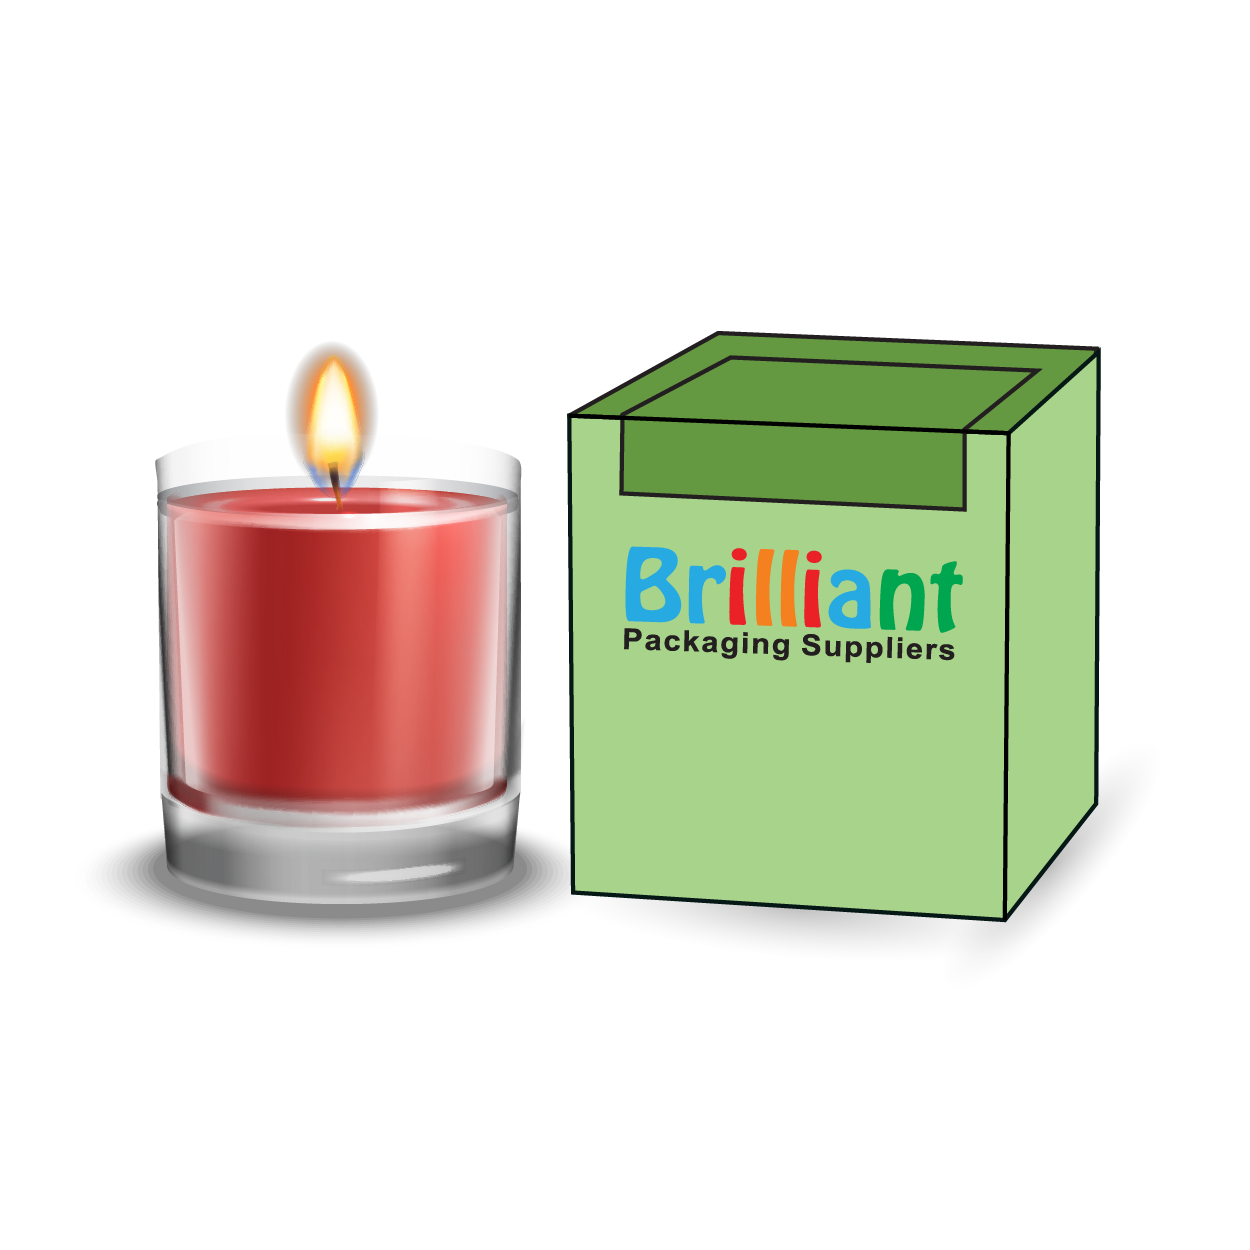 Candle Packaging Boxes - Candle Packaging Boxes, custom printed candle boxes, candle storage box, inexpensive candle boxes, kraft candle boxes, luxury candle box, candle gift box packaging, rigid candle boxes, candle boxes with window, gift candles in boxes, black candle boxes,